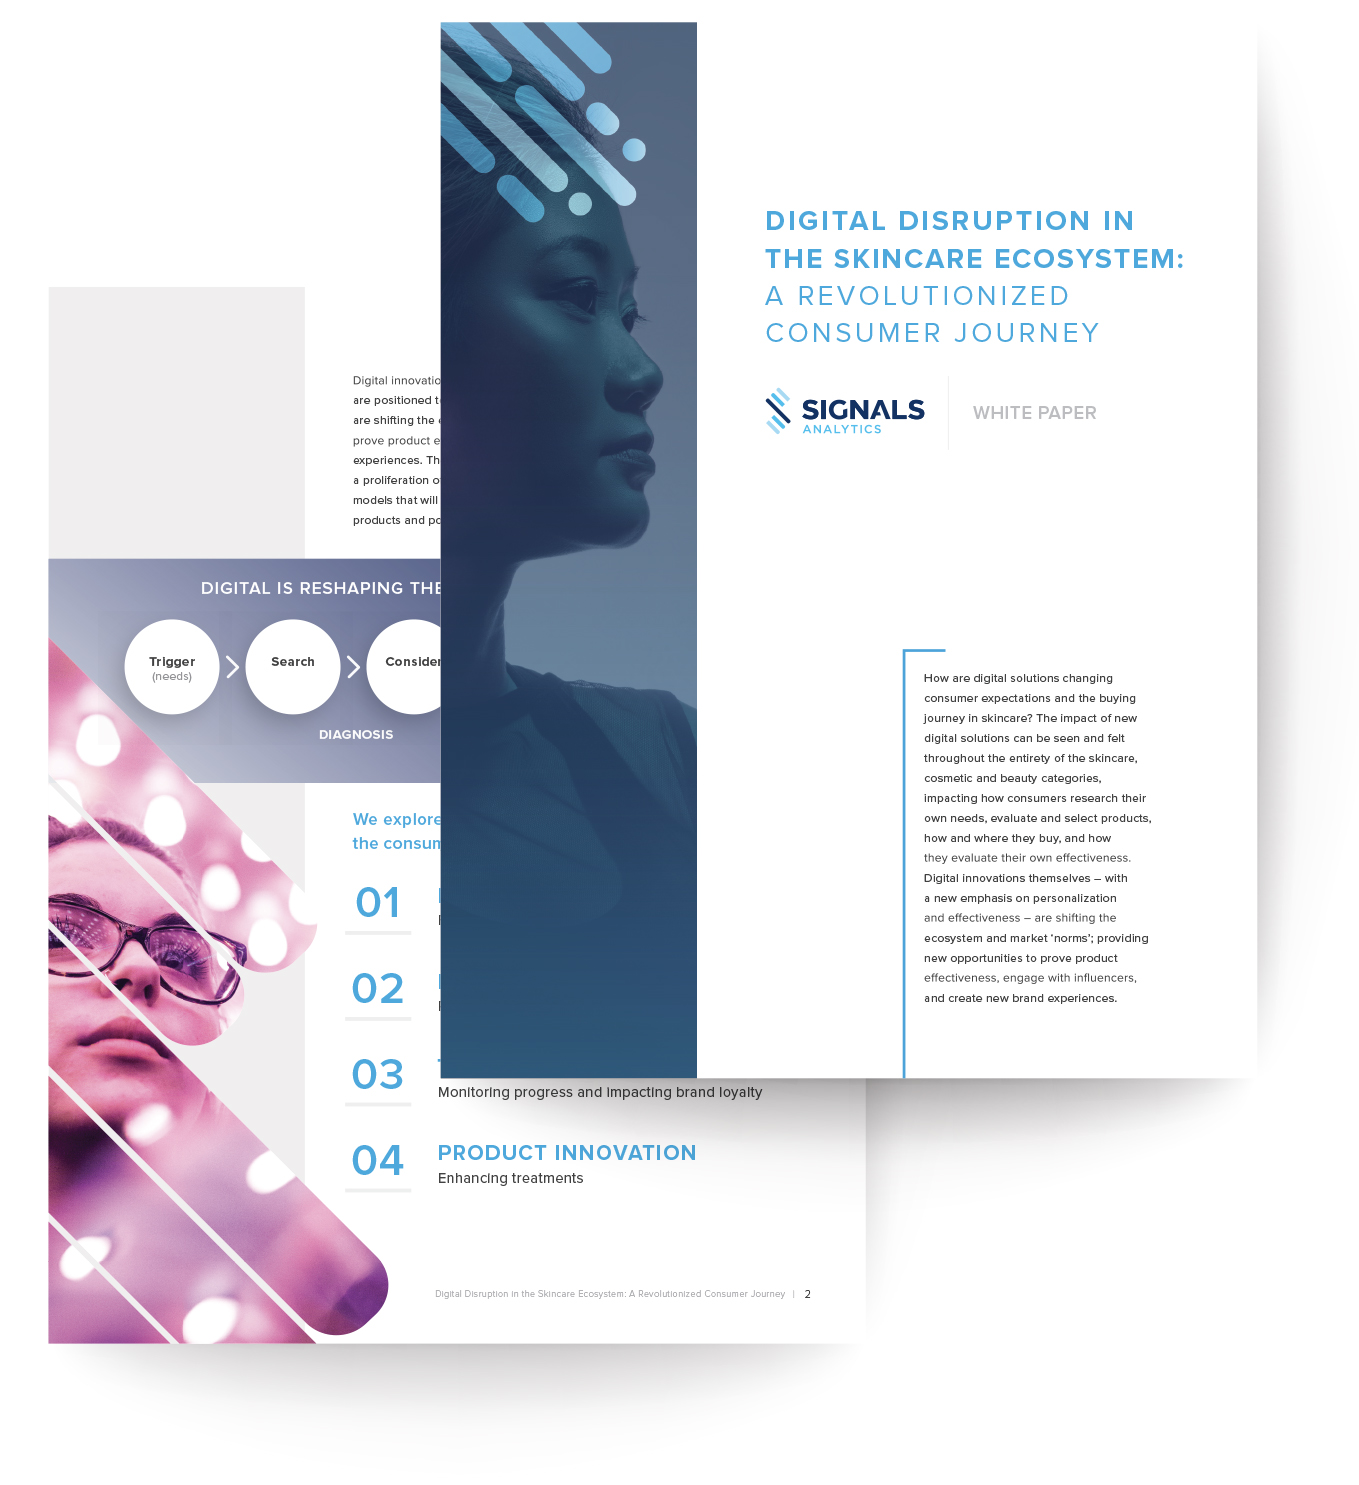 signals-analytics-white paper-web.jpg